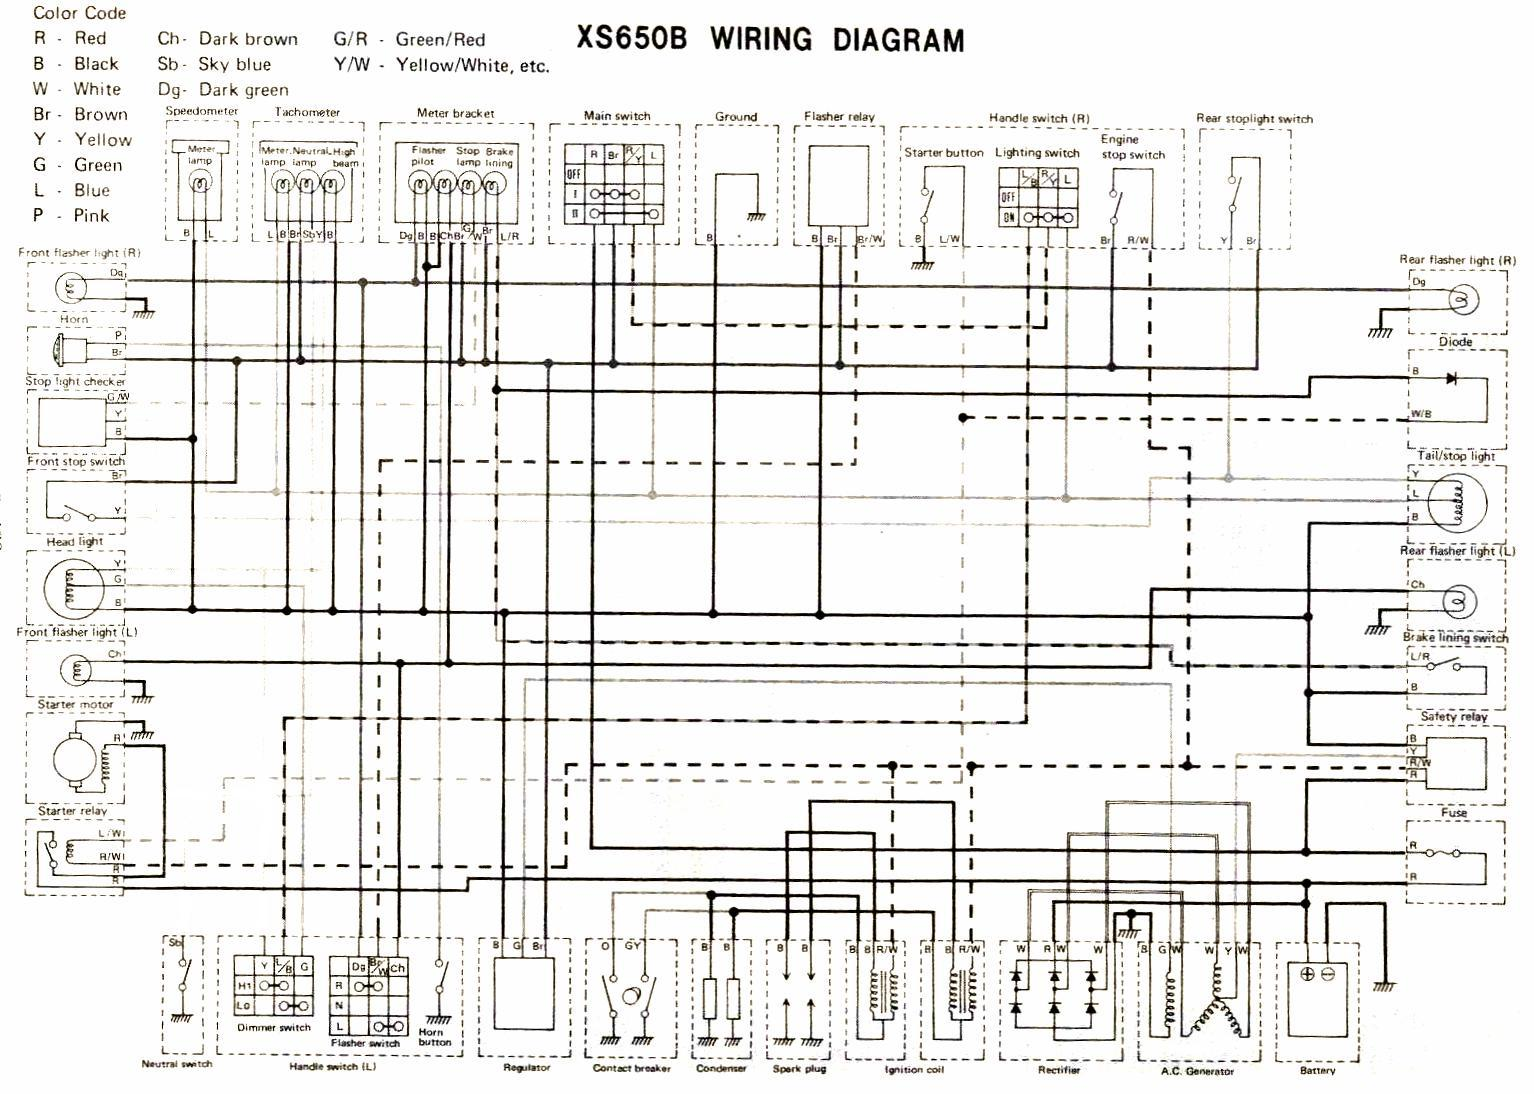 Wiring Diagrams 89 Yamaha Virago Diagram 1975 Xs650b